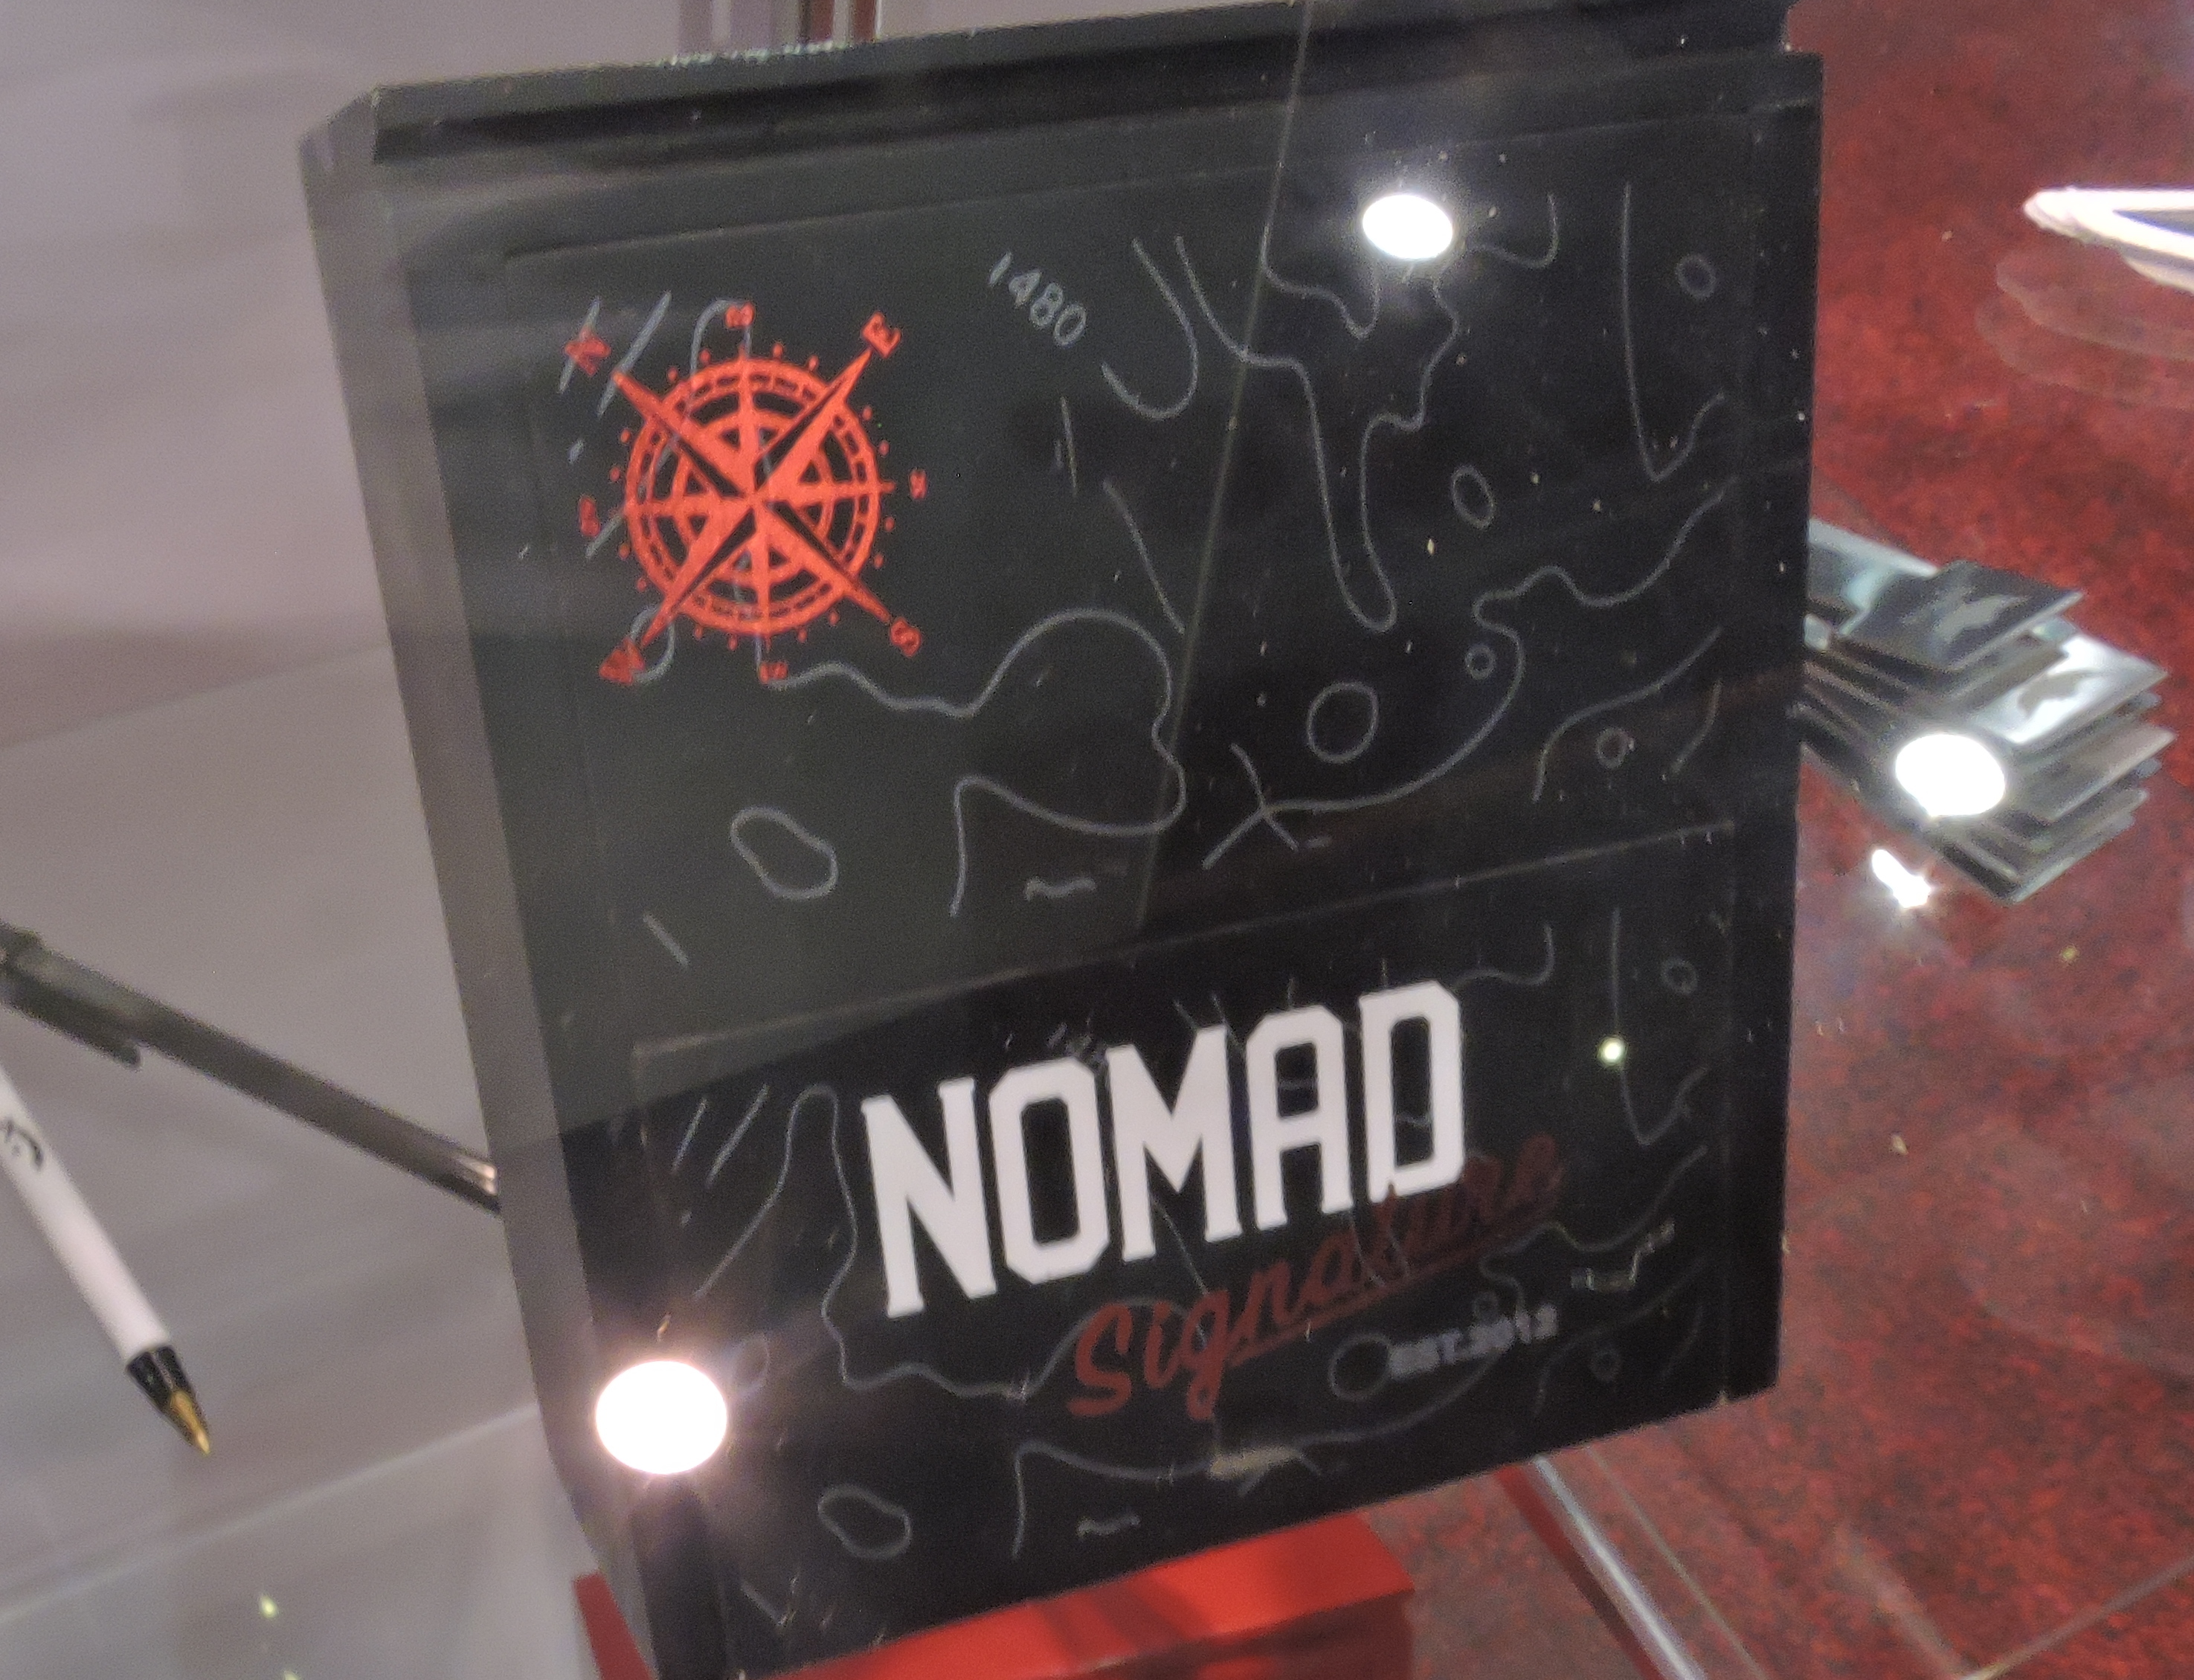 Cigar News: Nomad Signature Launched at 2018 IPCPR